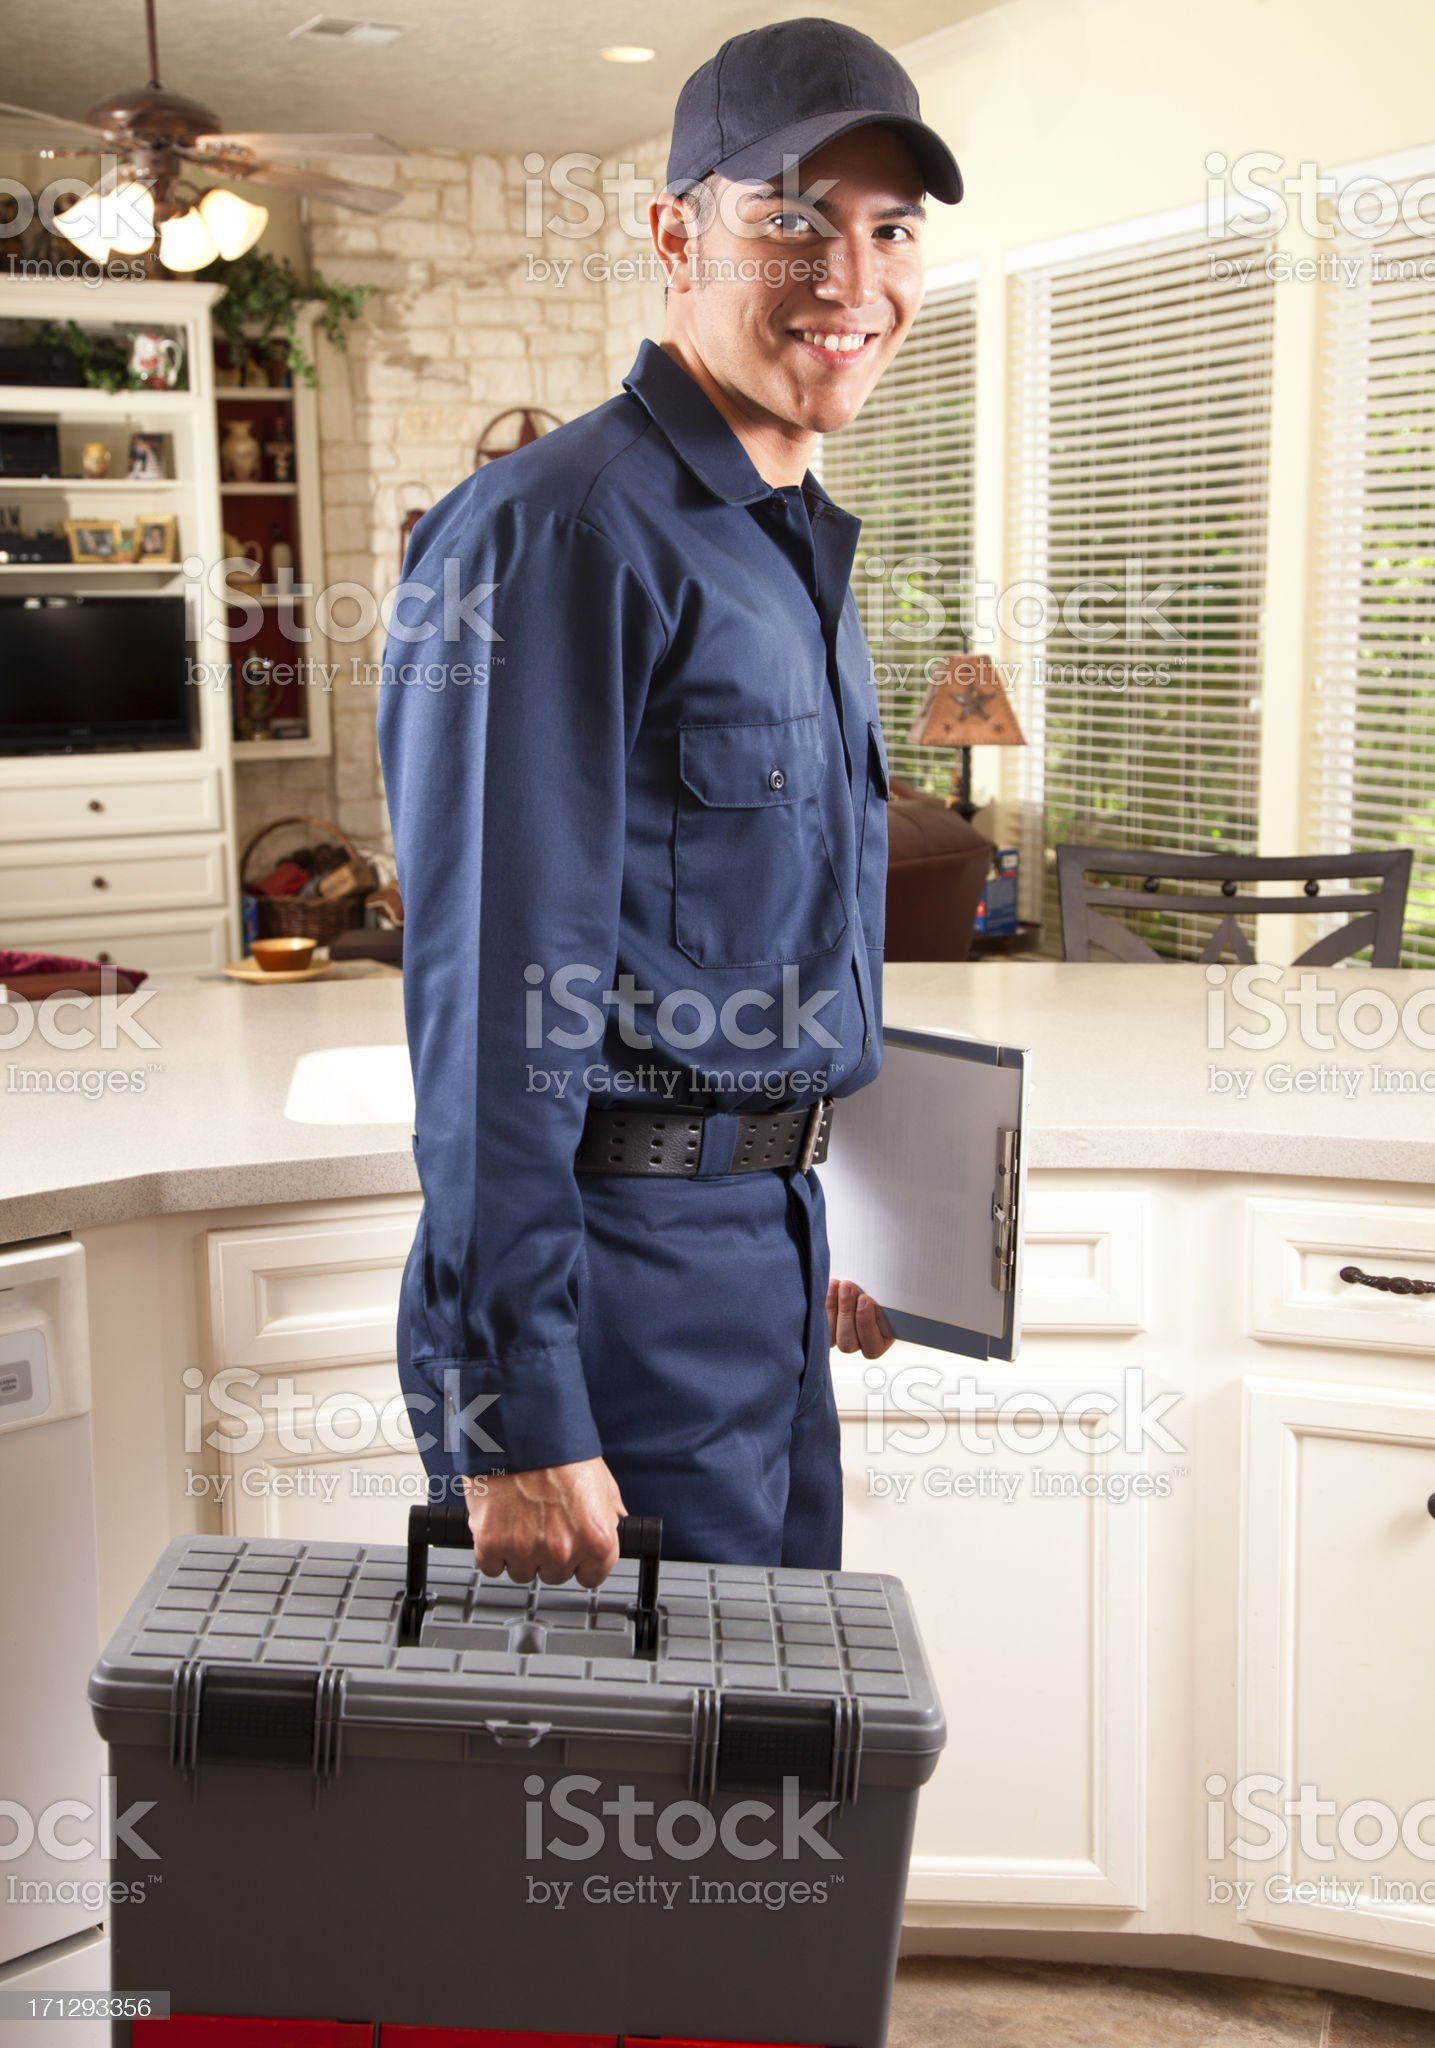 Plumber, repairman arriving in home domestic kitchen for service call. royalty-free stock photo